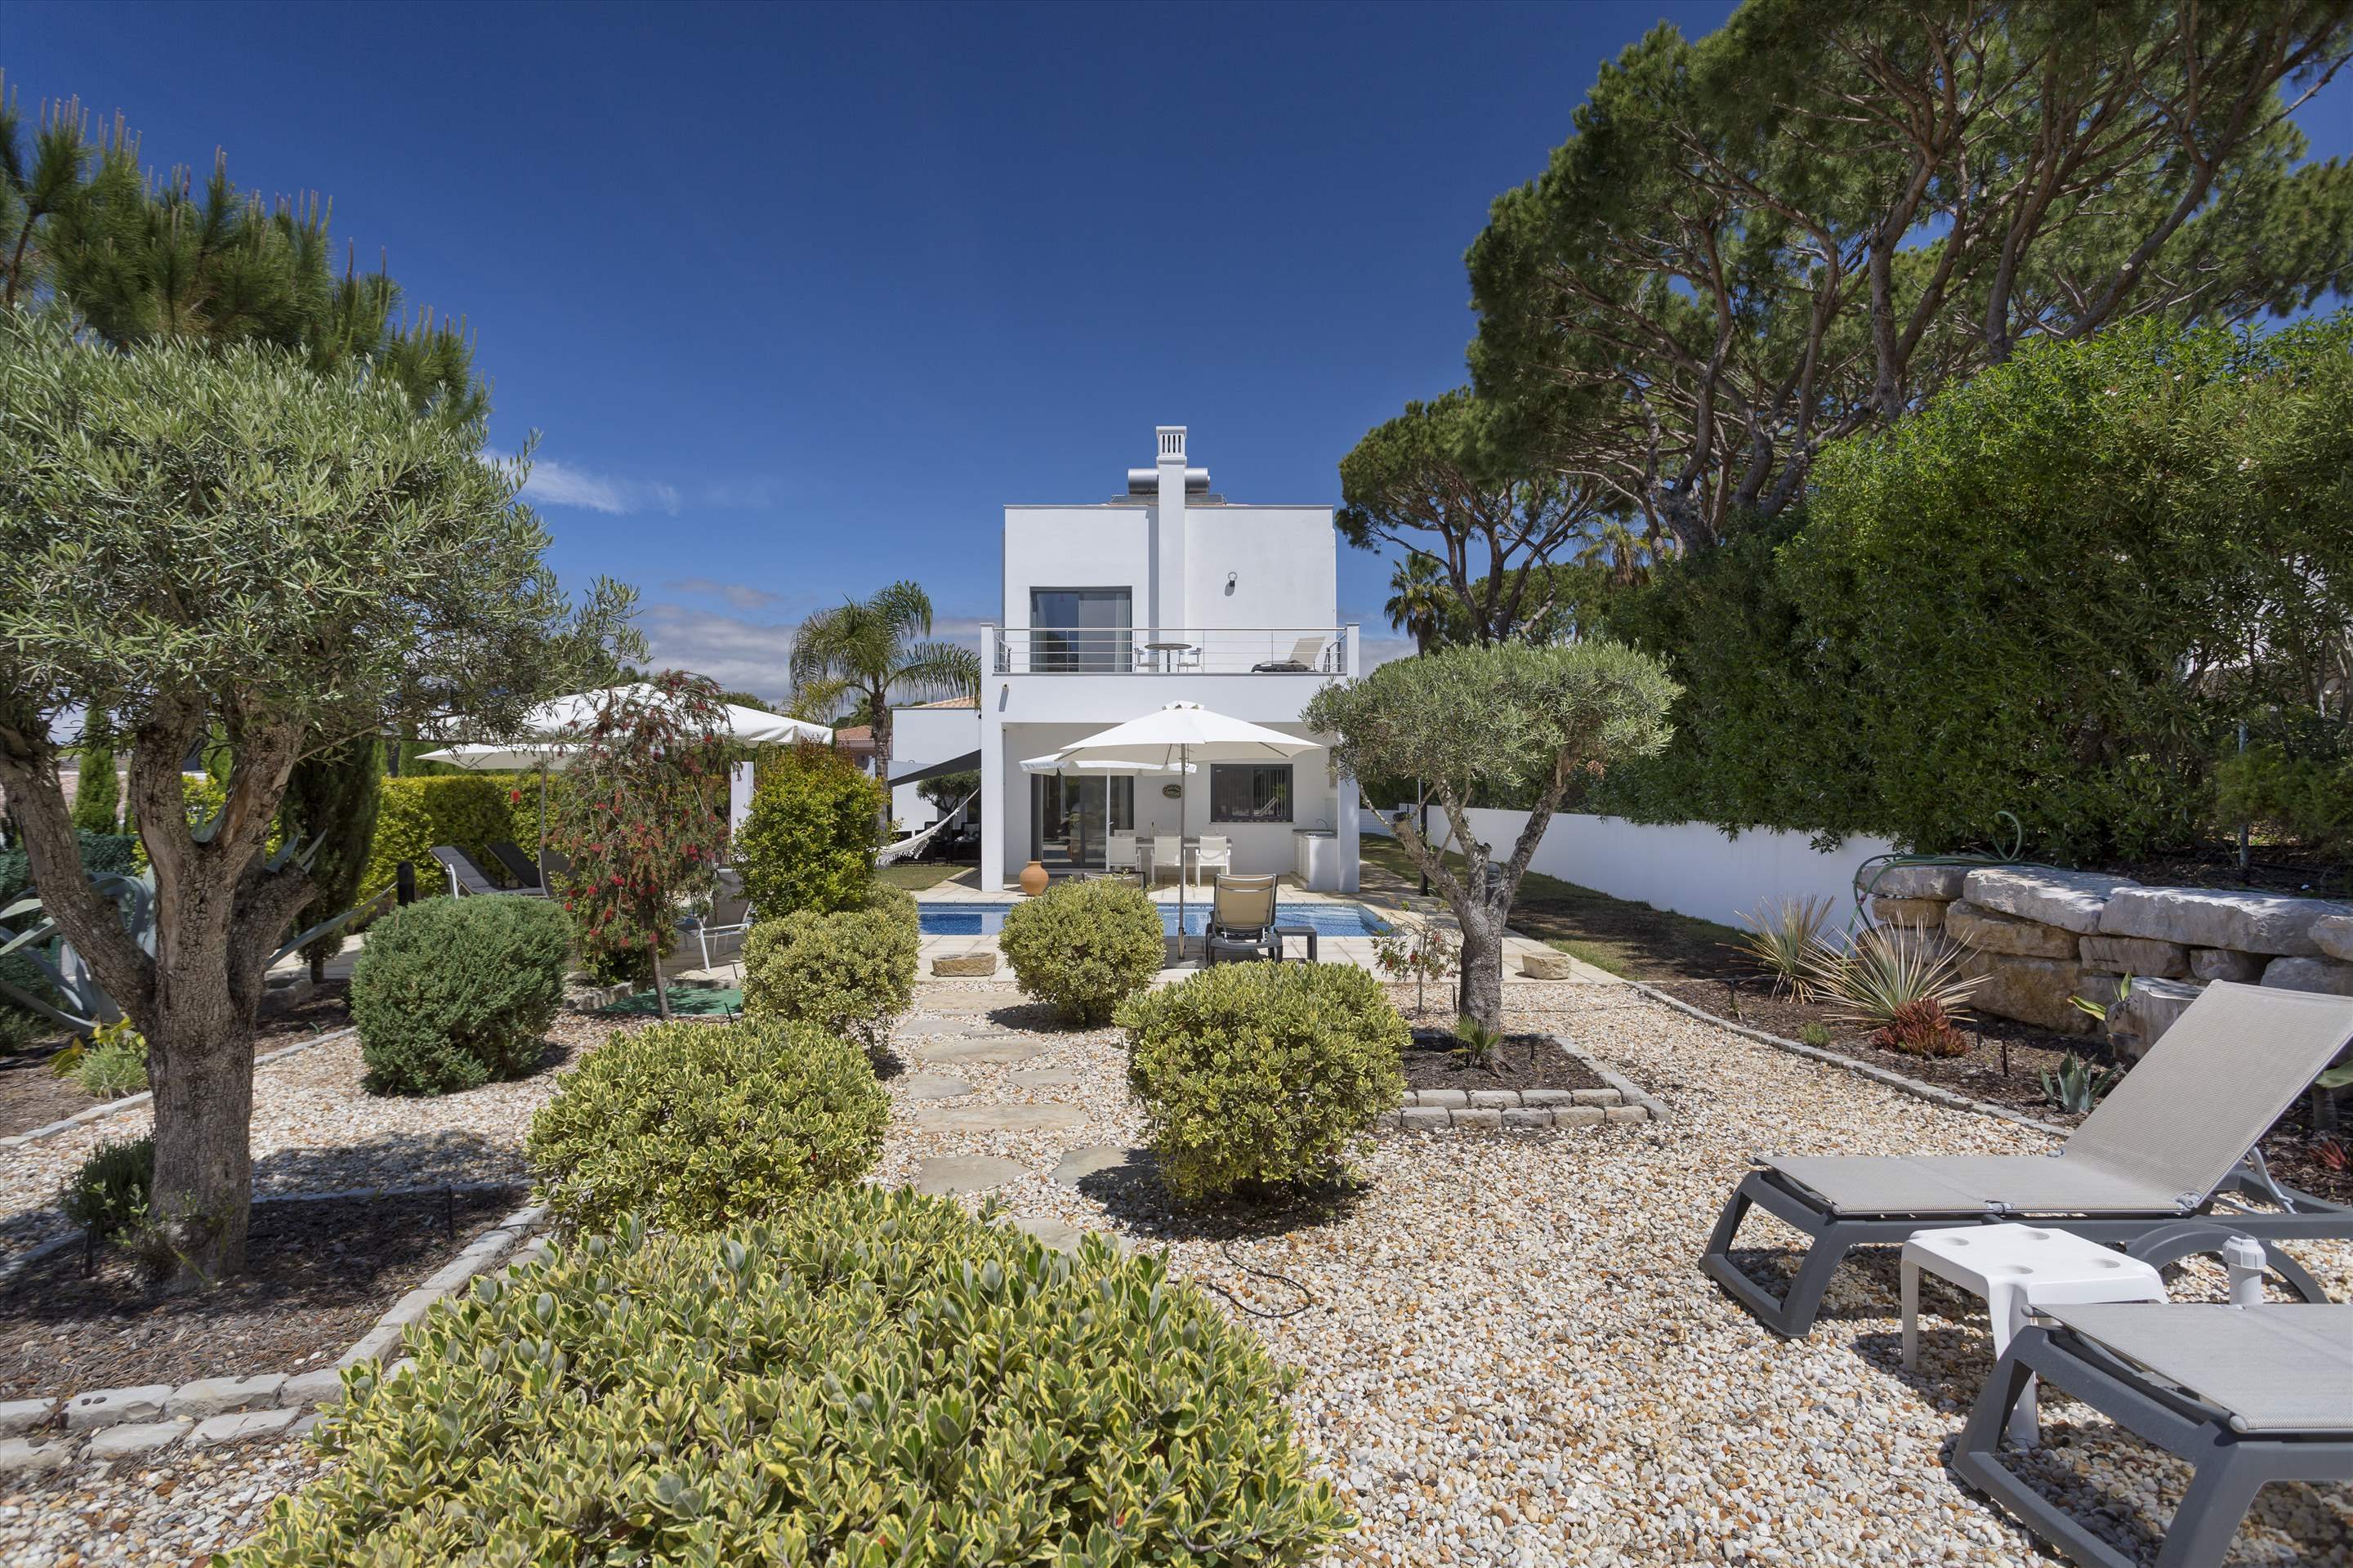 Villa Selena, 2 bedroom villa in Quinta do Lago, Algarve Photo #11